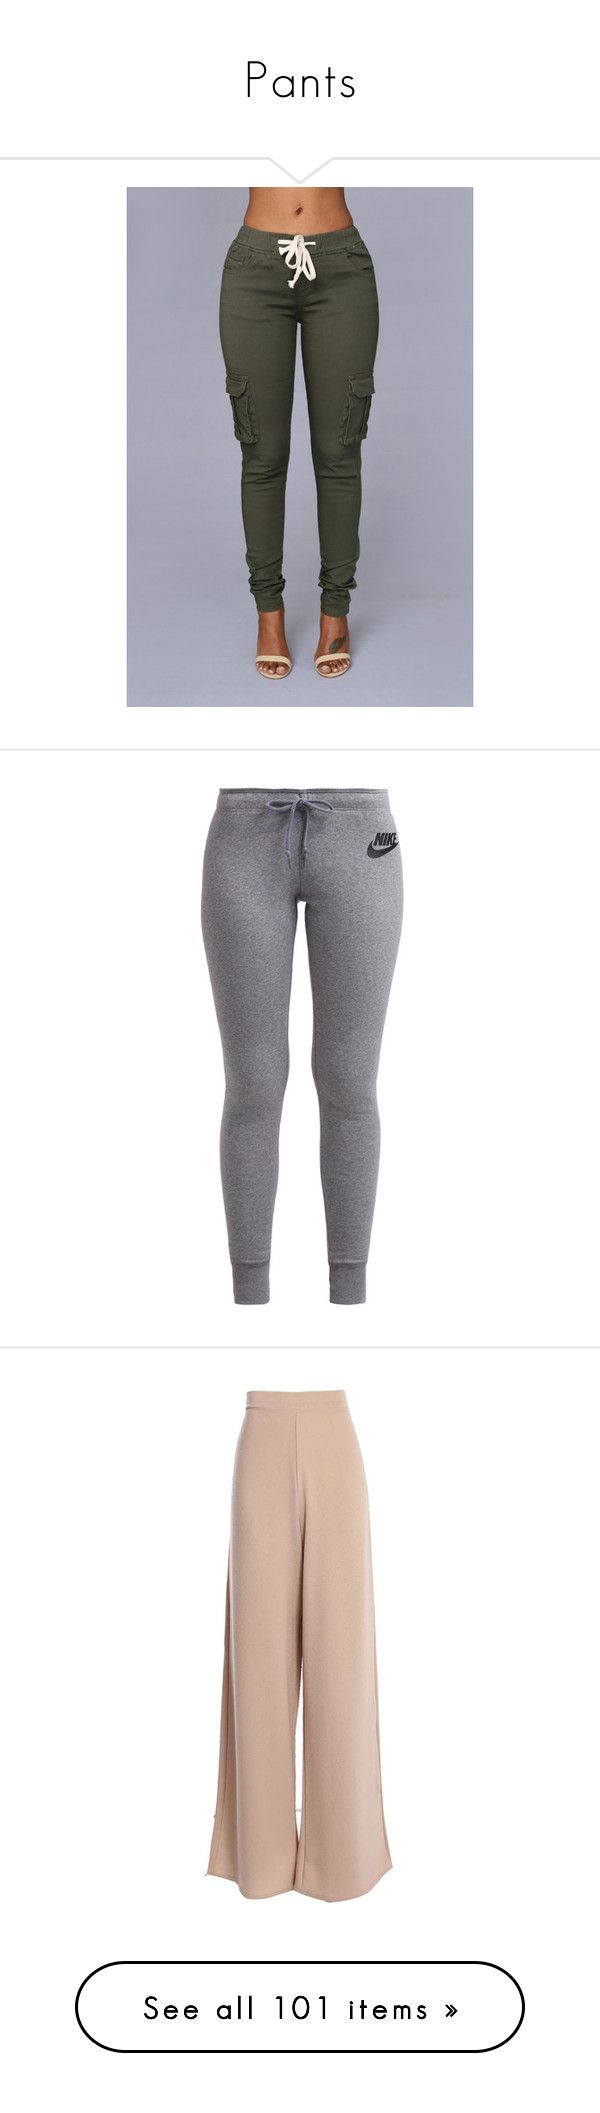 """""""Pants"""" by power-beauty ❤ liked on Polyvore featuring pants, sweatpants, army green pants, military green pants, olive pants, green camo pants, olive trousers, activewear, activewear pants and bottoms"""